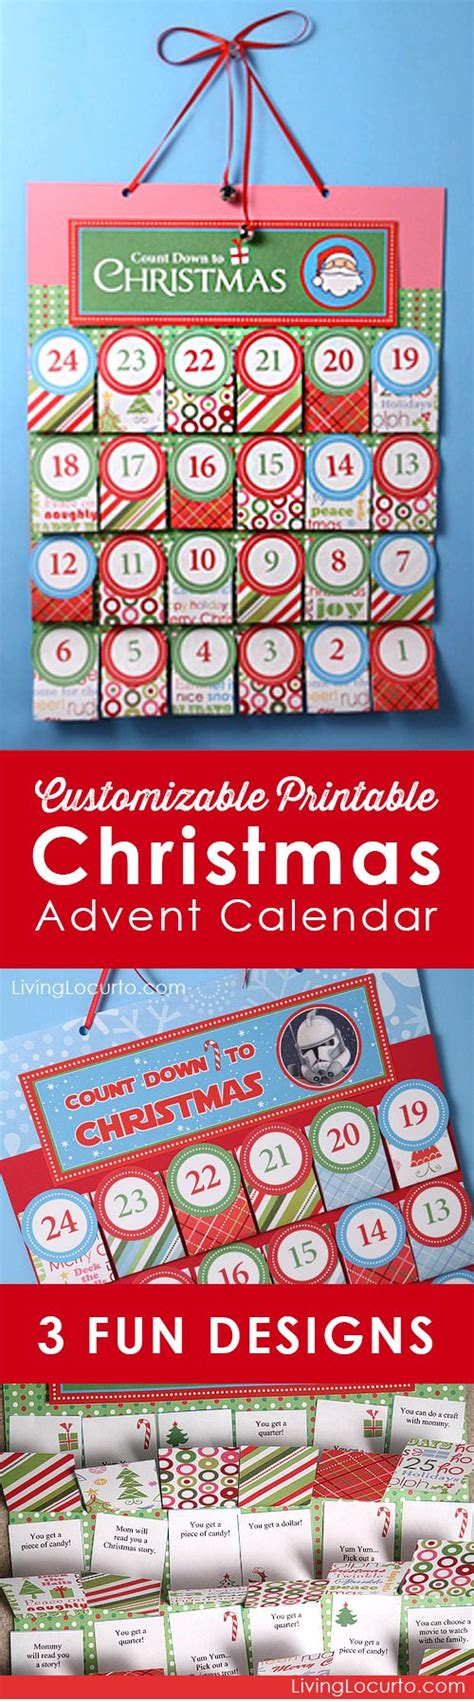 printable paper advent calendar personalized free printable christmas advent calendar